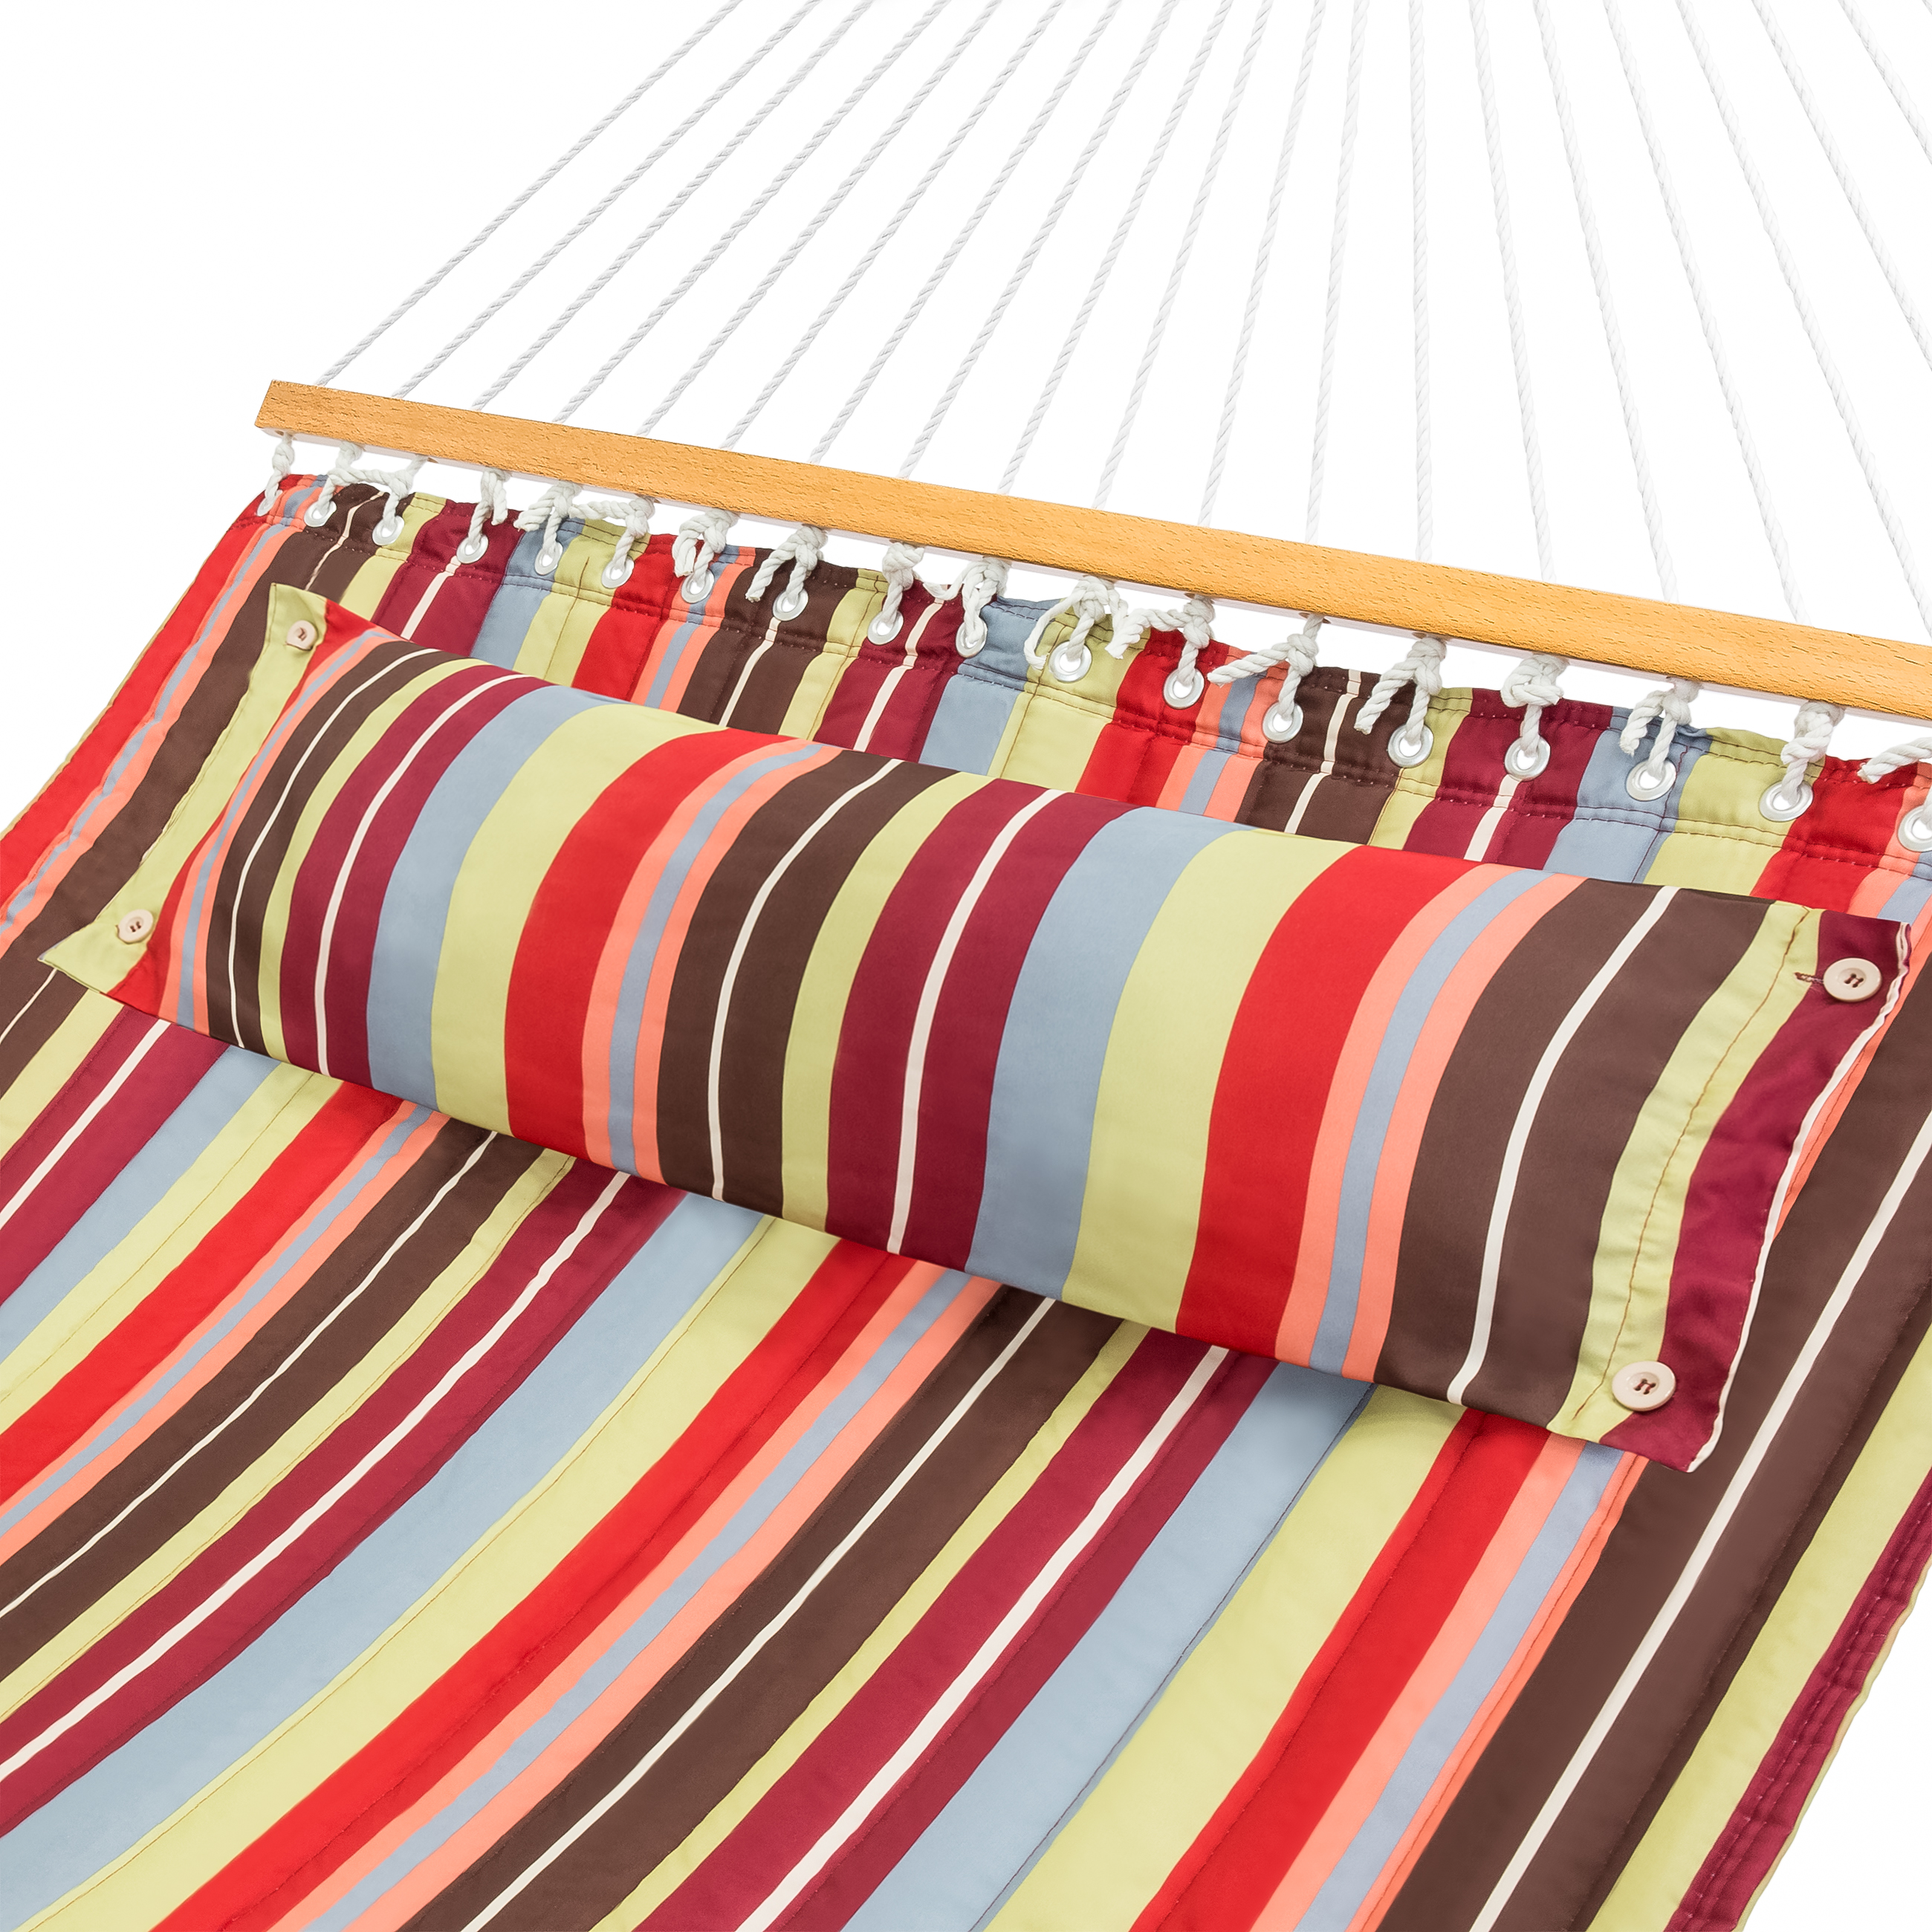 Best Choice Products Quilted Double Hammock w  Detachable Pillow, Spreader Bar Red and Blue Stripe by Best Choice Products